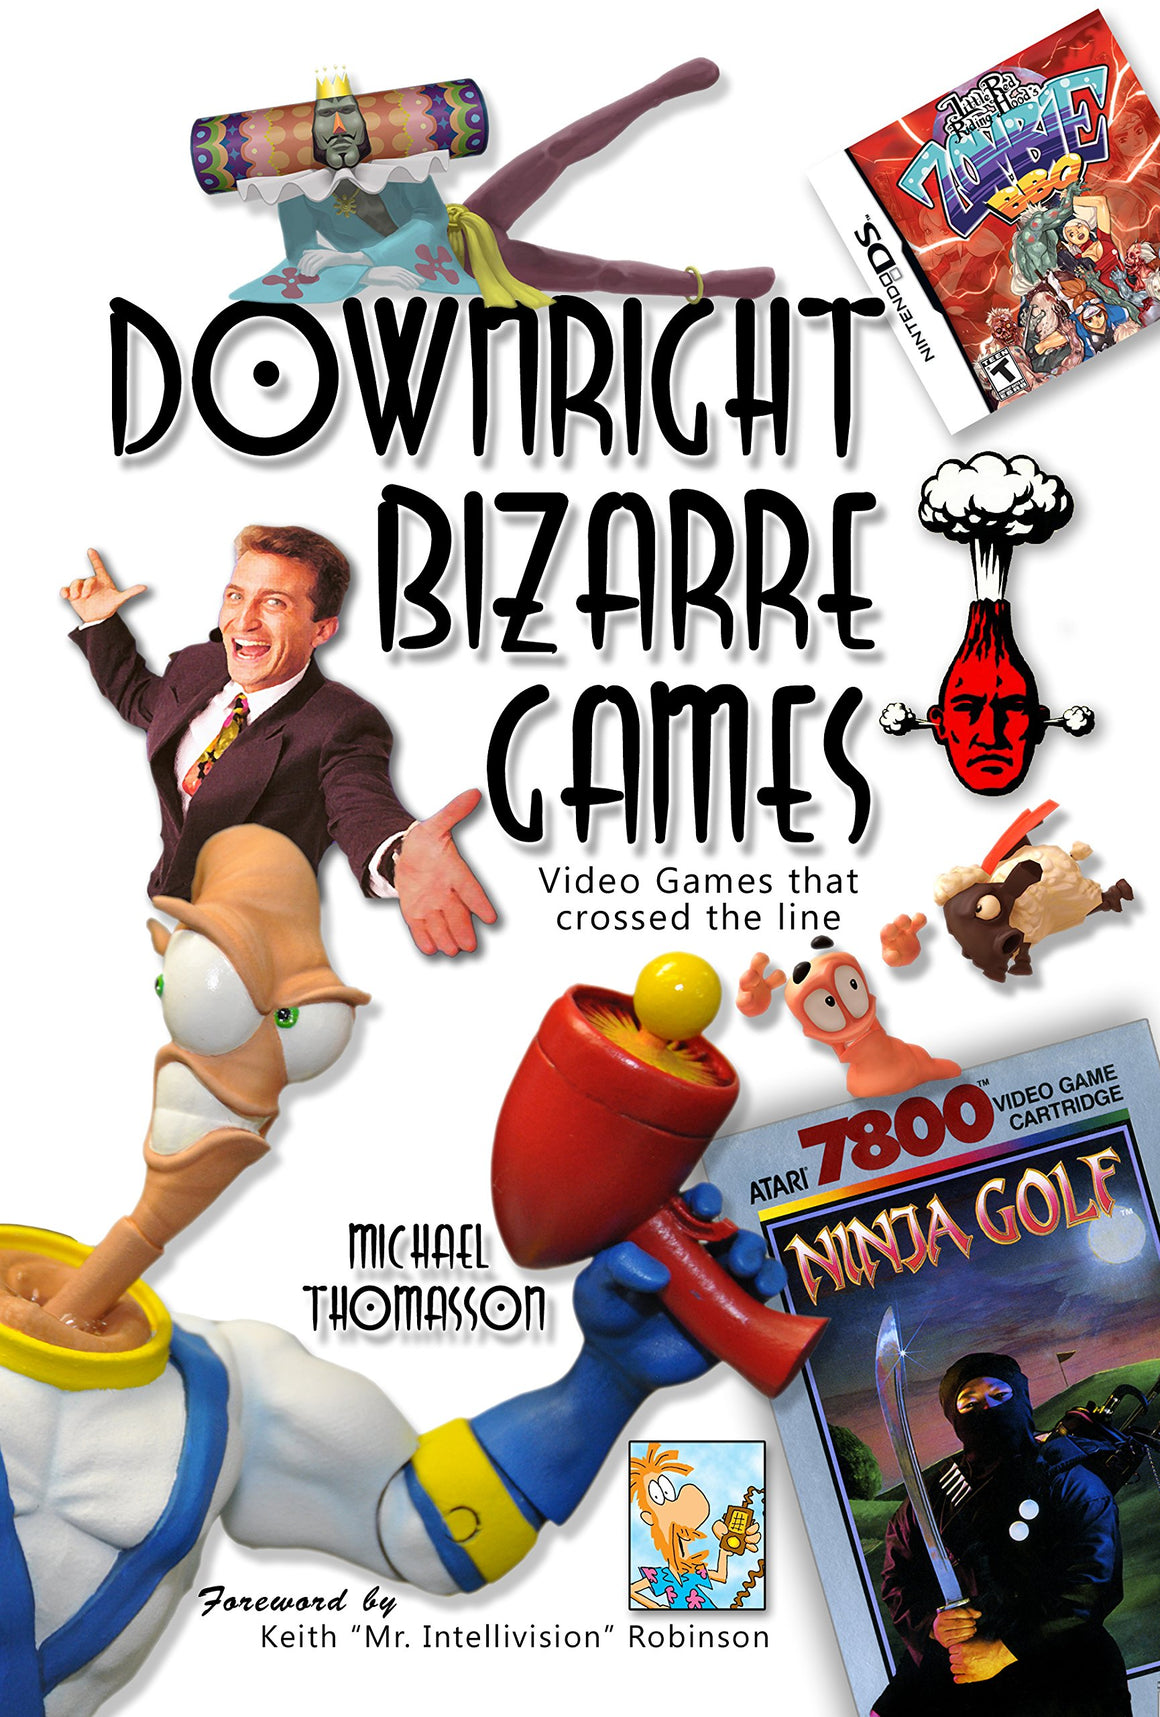 [Book] Downright Bizarre Games by Michael Thomasson, Foreward by Keith Robinson